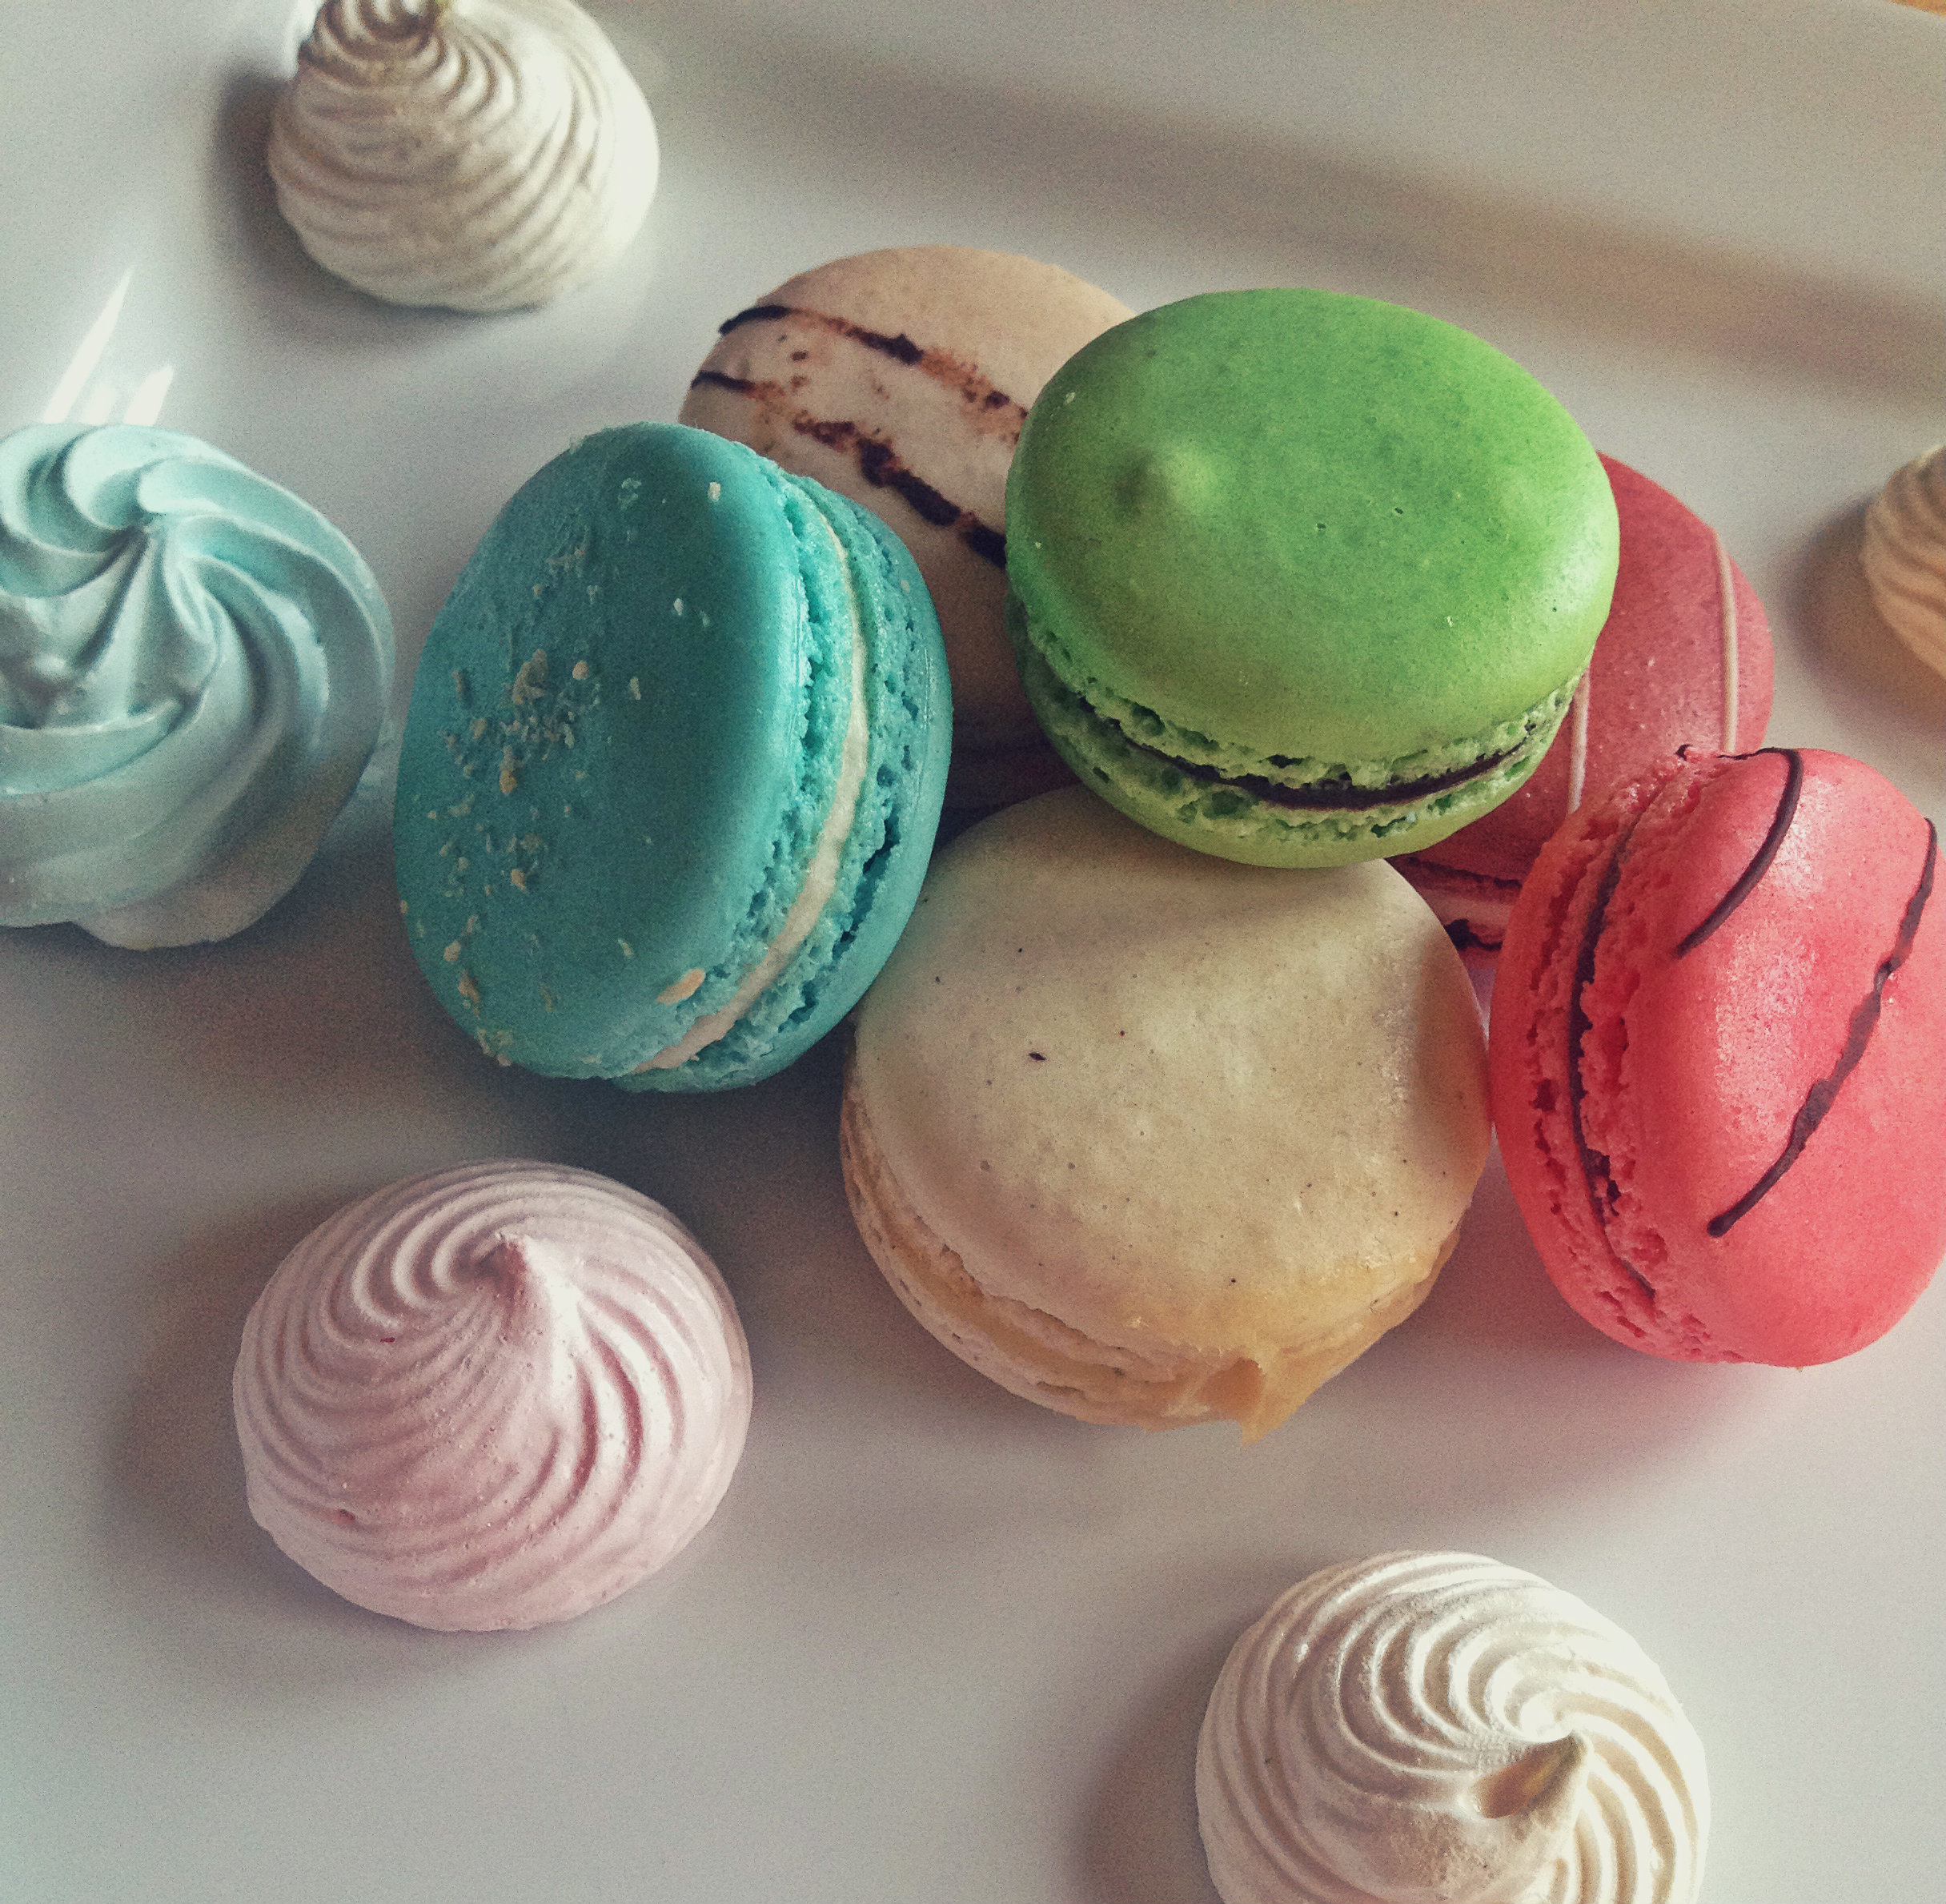 Macarons and meringue | Tall Girl Meets World